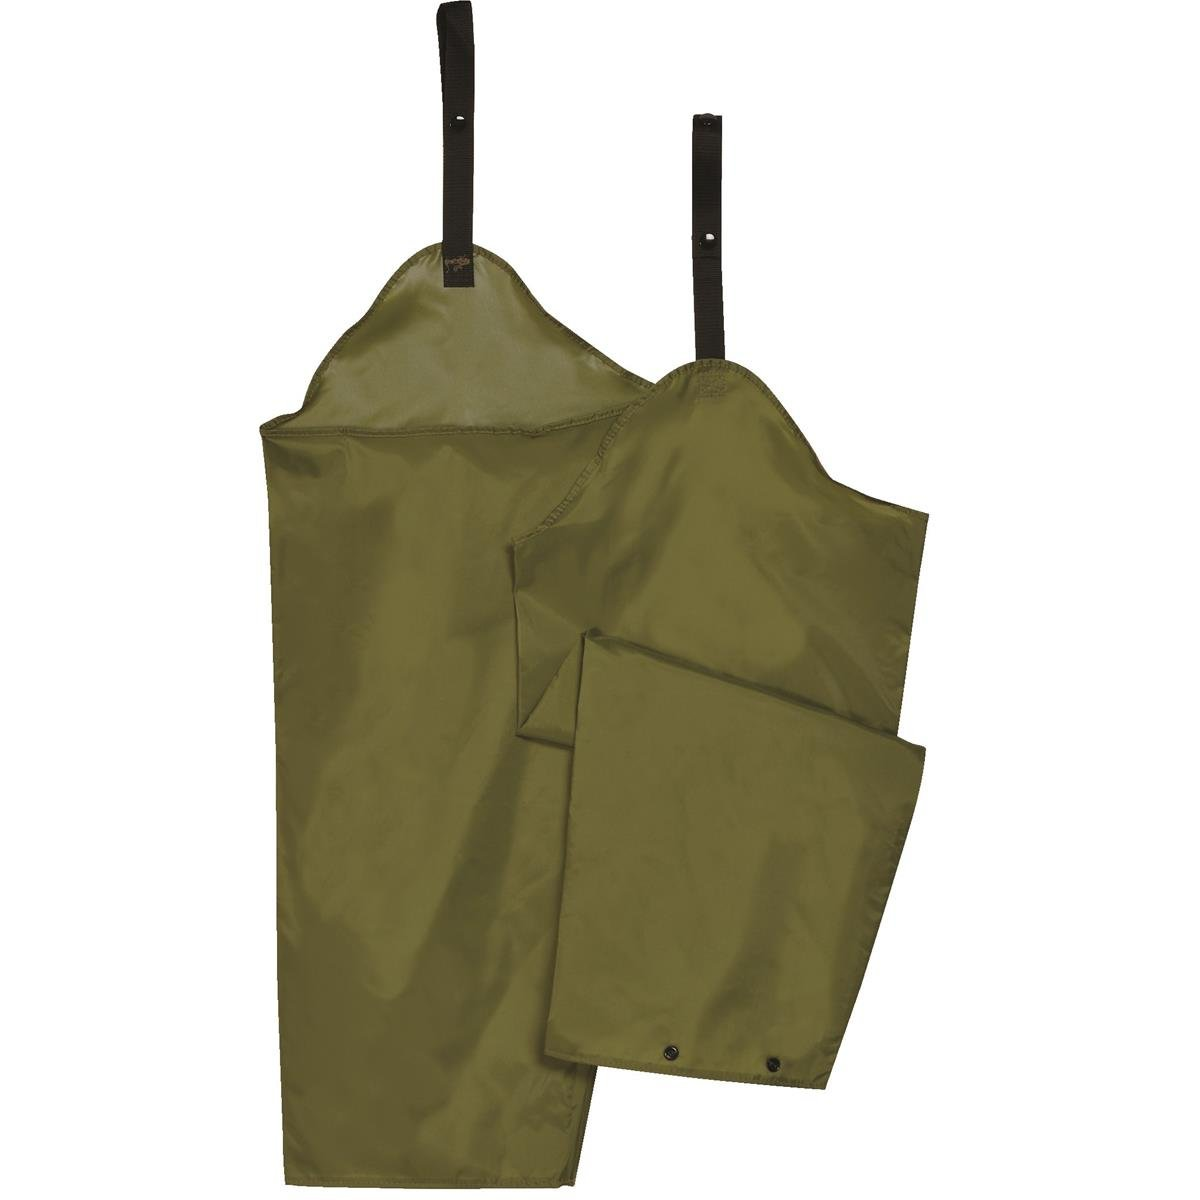 GEMPLER'S Adjustable Waterproof Lower Body Protective Spraying Safety Chaps, Olive Green, Lightweight, Chemical Resistant, One Size Fits All – Protects from Class III and IV pesticides.